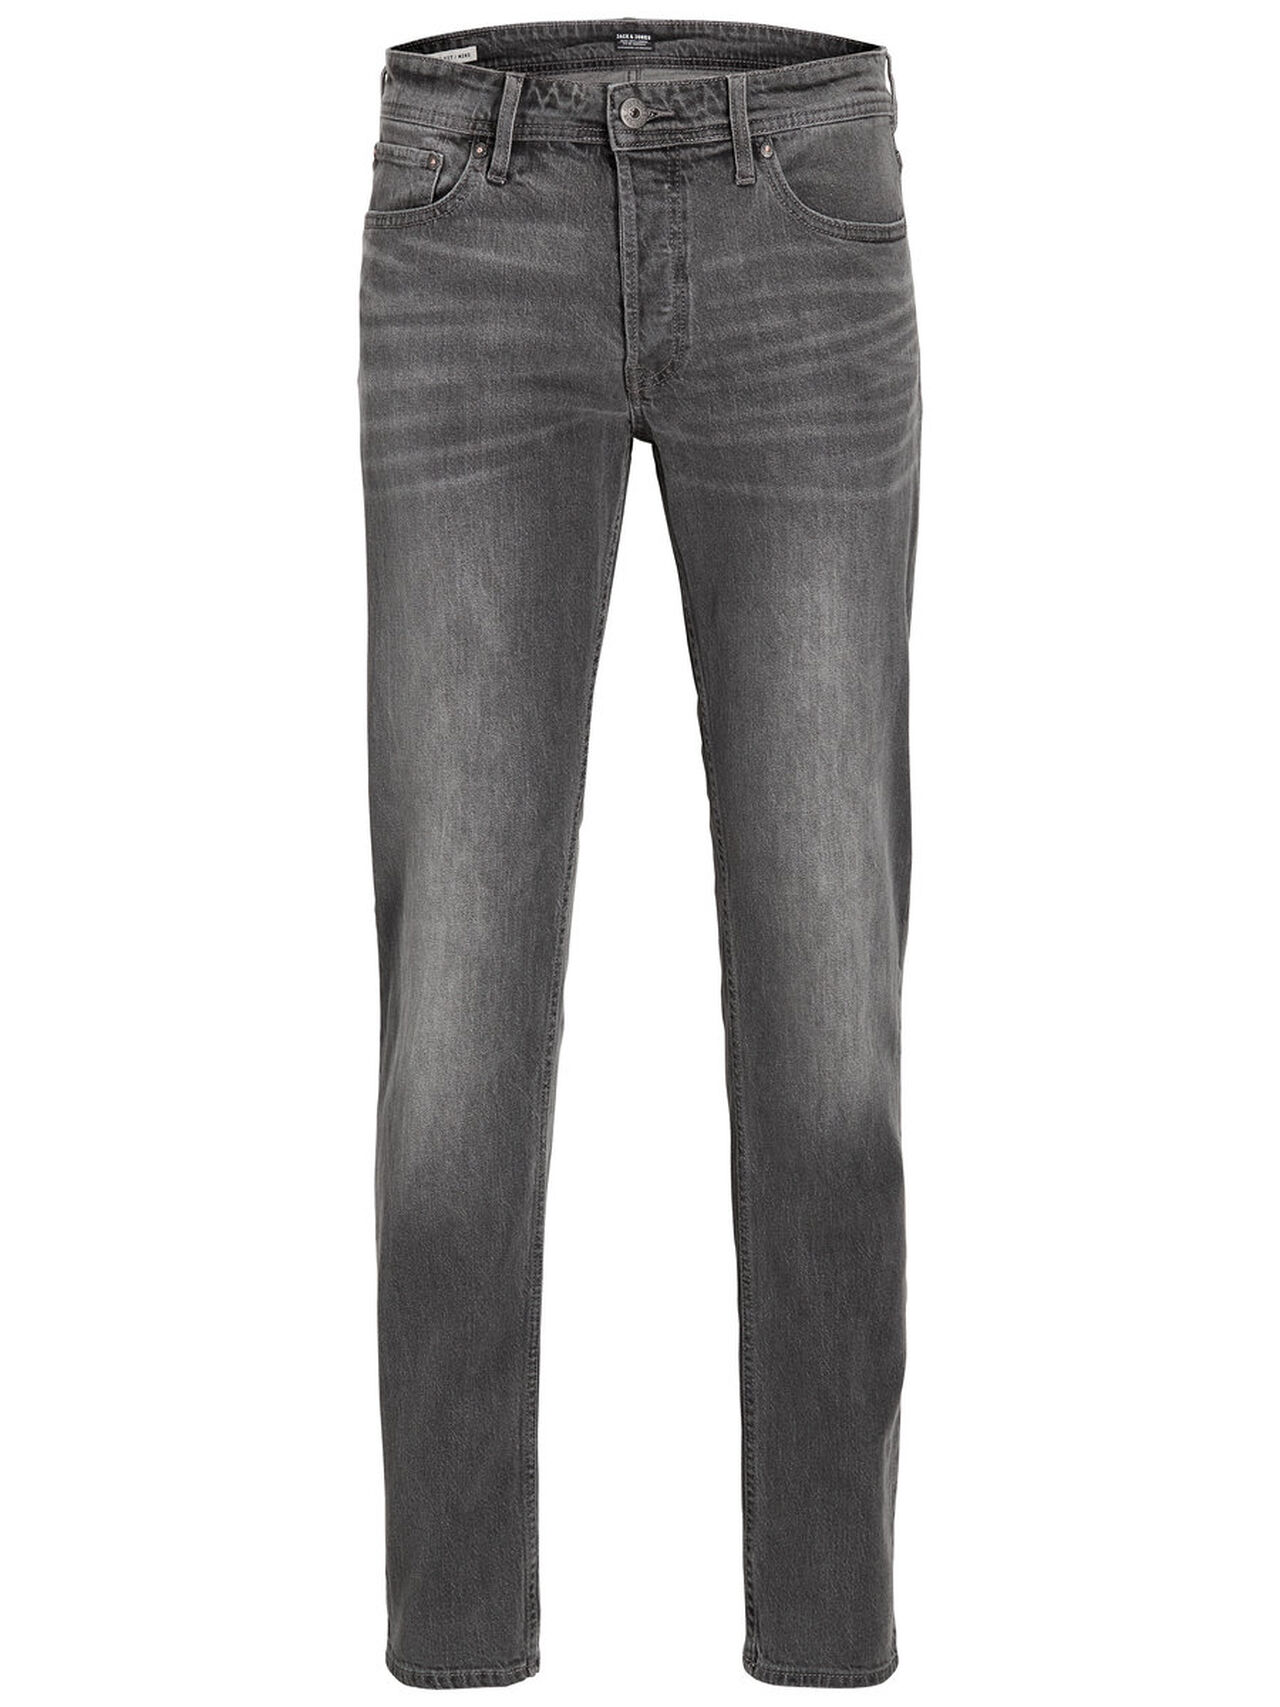 Artikel klicken und genauer betrachten! - - Classic and uncomplicated five-pocket jeans. Comfort fit with roomy thigh for comfort. With button fly. Natural worn in look created manually by hand. The jeans have been bleached for high contrasts. The model is wearing a size L and is 187 cm tall . JACK & JONES JEANS INTELLIGENCE Comfort fit Mike is a contemporary comfort fit with attitude. The fit is roomy at the top and has tapered legs. This gives you a relaxed and clean silhouette. | im Online Shop kaufen